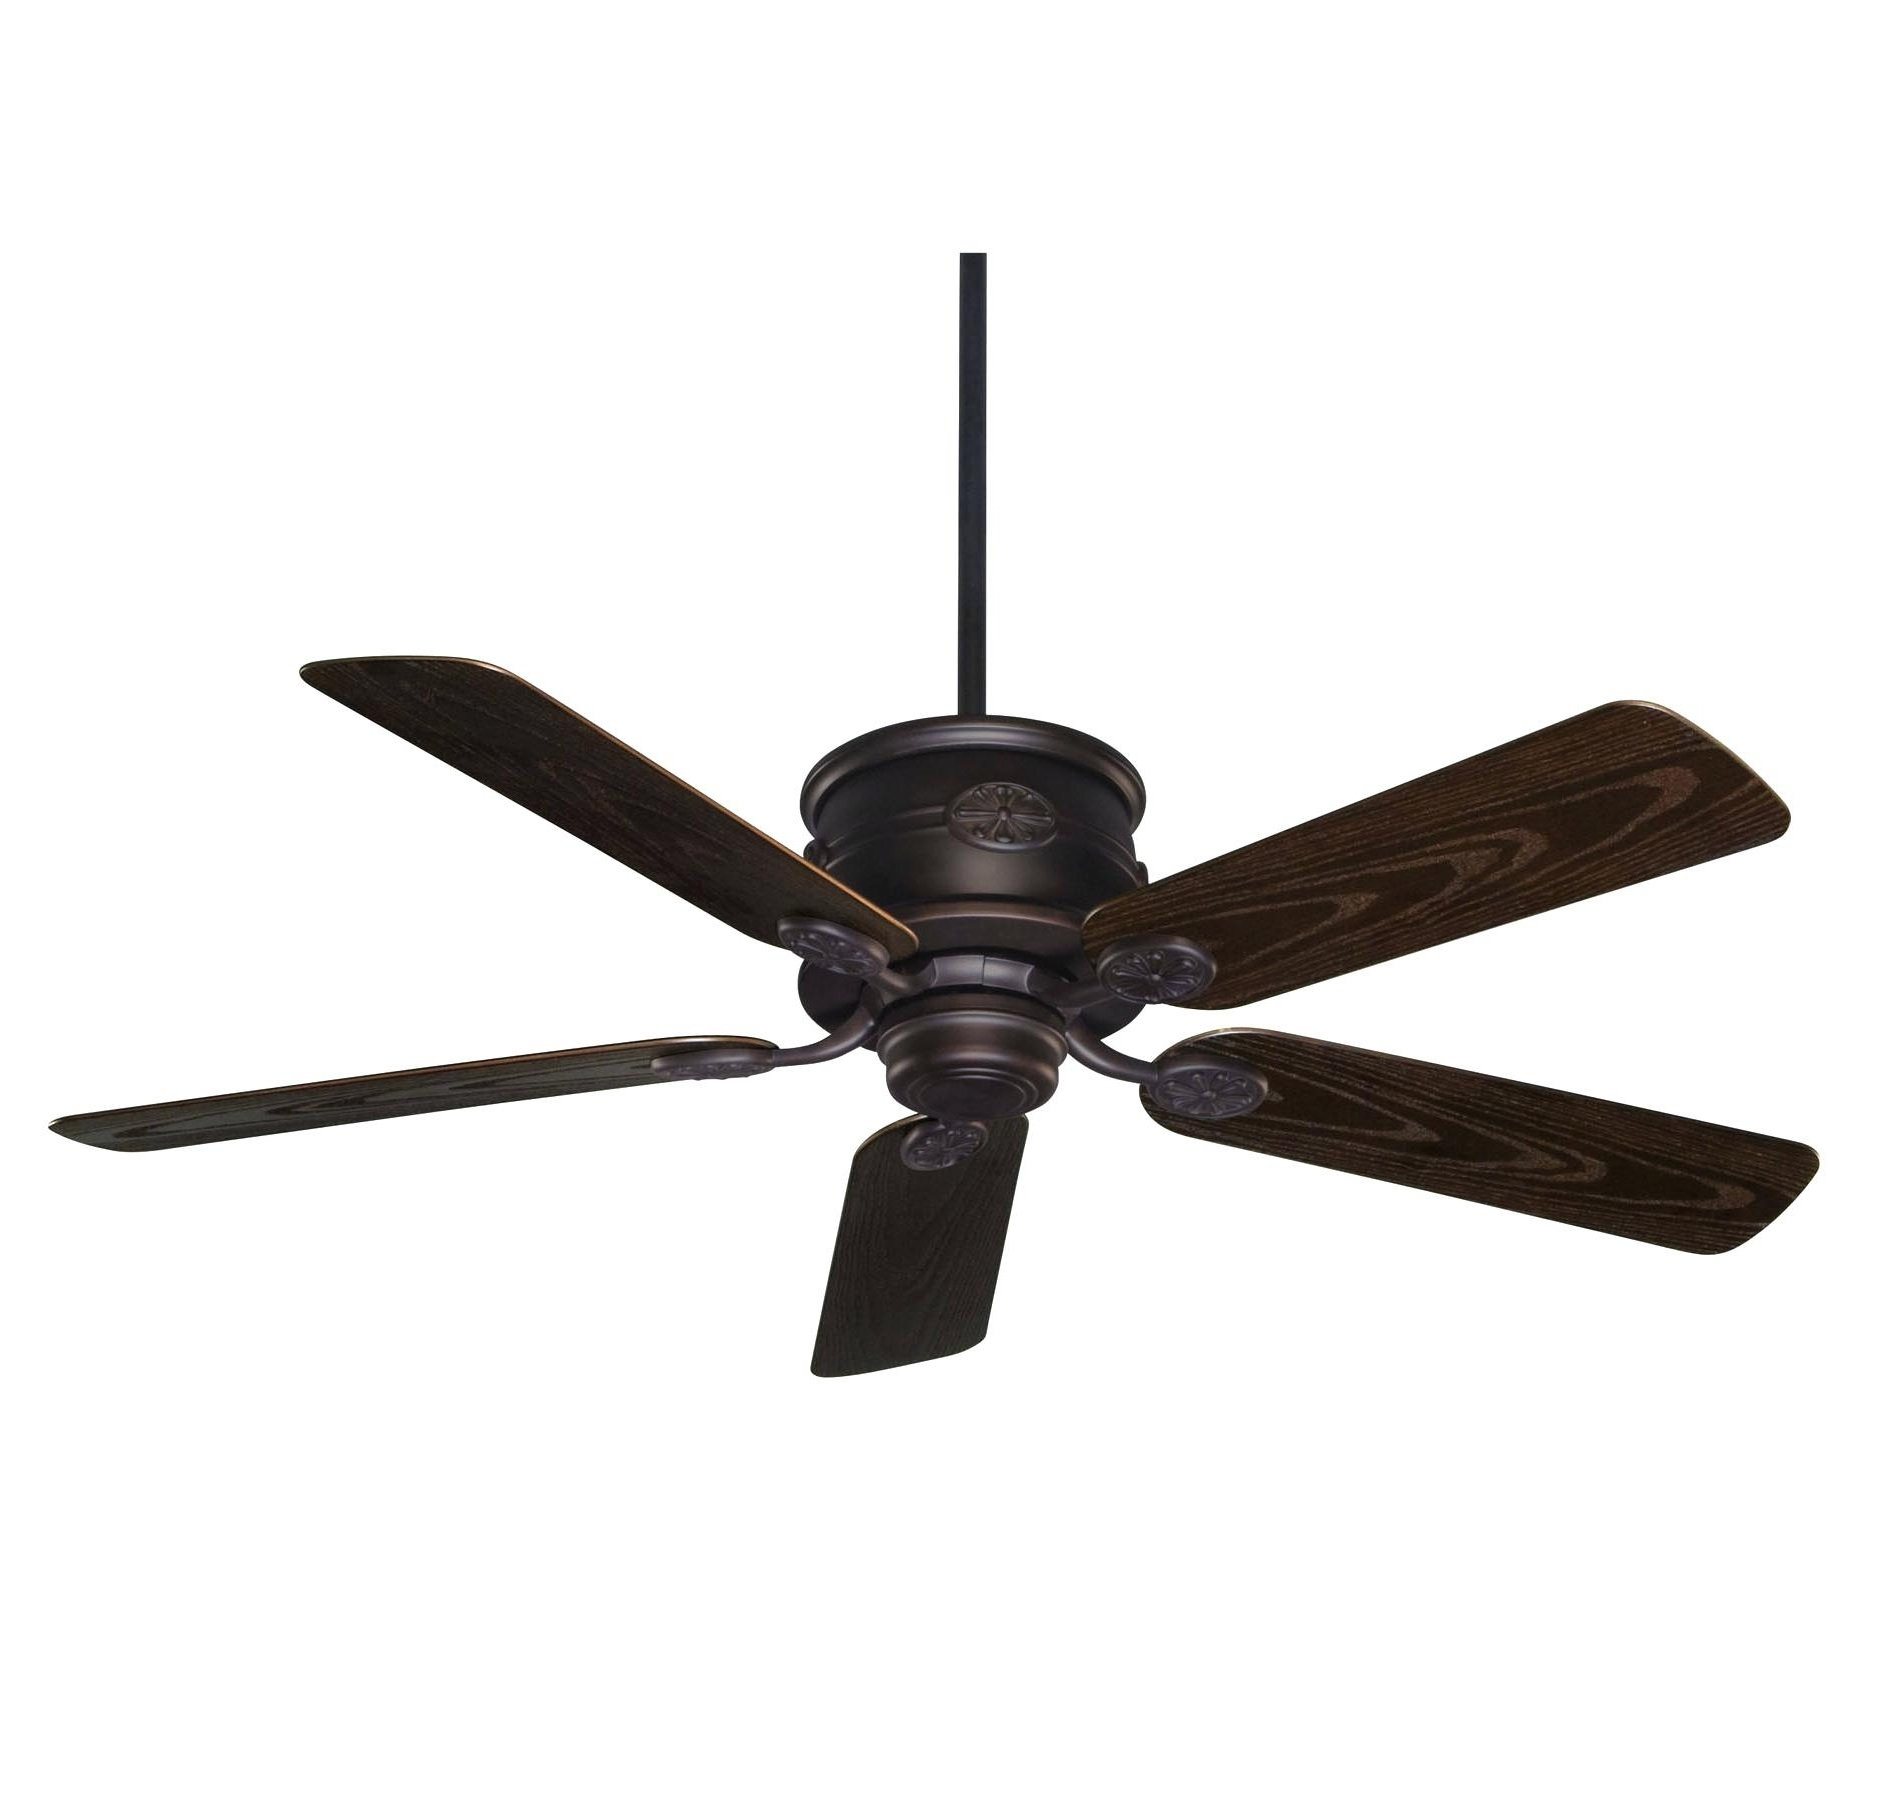 Famous Wayfair Ceiling Fans S Fan Lights With Remote Hugger For Wayfair Outdoor Ceiling Fans With Lights (View 4 of 20)